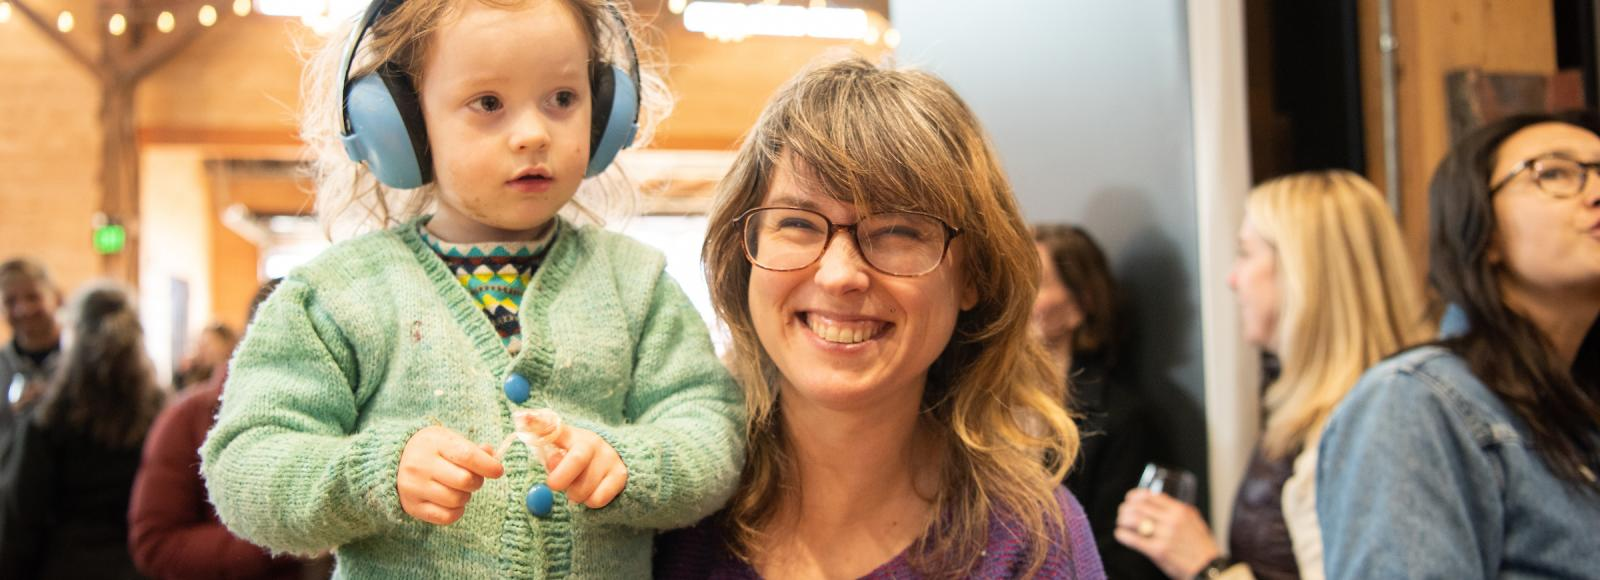 A woman in glasses and a purple shirt holds her son wearing blue headphones and a green shirt.